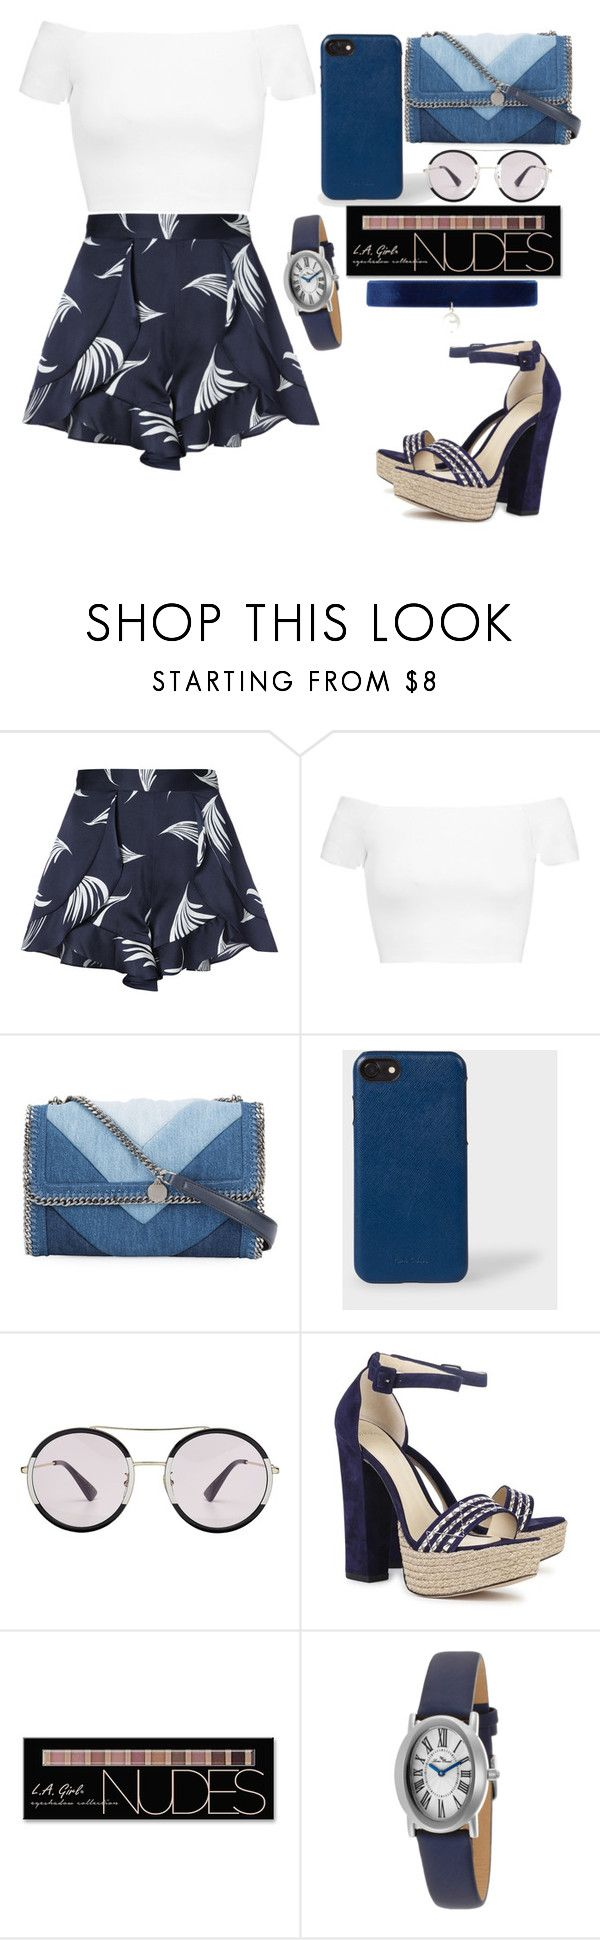 """""""Untitled #932"""" by hela-ba ❤ liked on Polyvore featuring C/MEO COLLECTIVE, Alice + Olivia, STELLA McCARTNEY, Gucci, Alexandre Birman, Charlotte Russe, Lucien Piccard and Joomi Lim"""